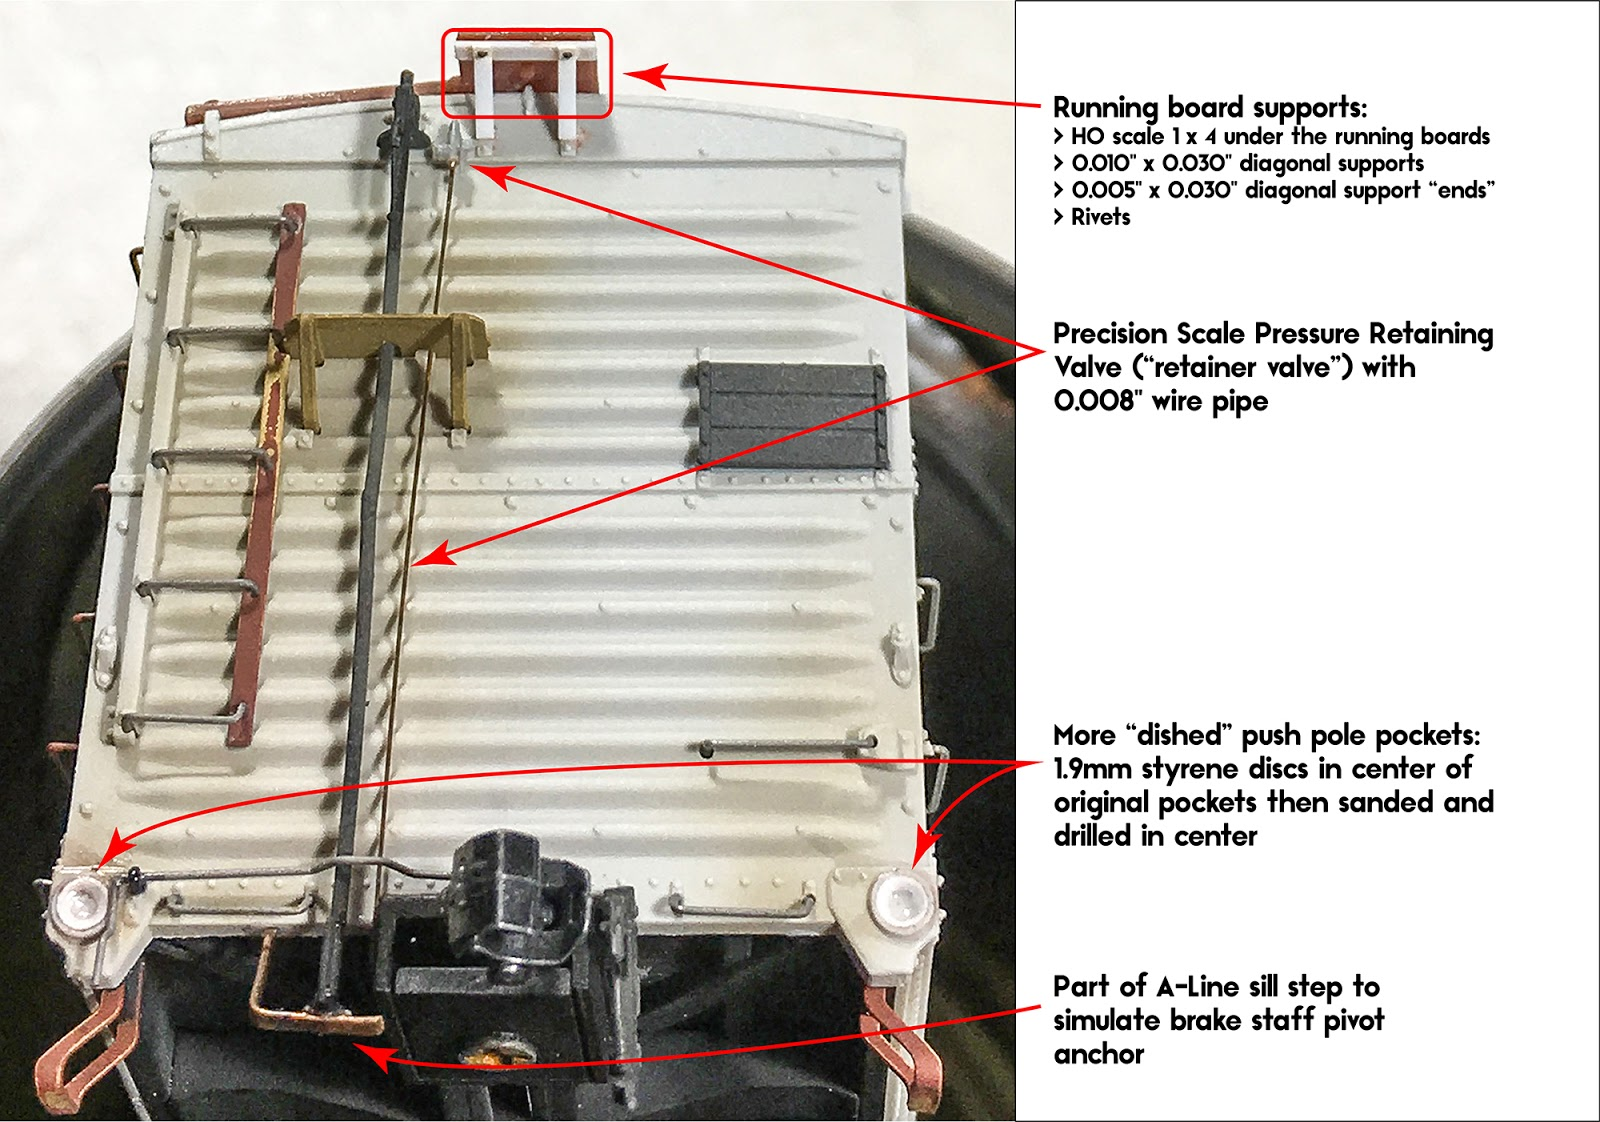 Prototype Railroad Topics 2018 Wiring Running Board Most Of The Upgrades Were Performed On Ends With Majority Those Specifically B End I Replaced Supports Styrene To